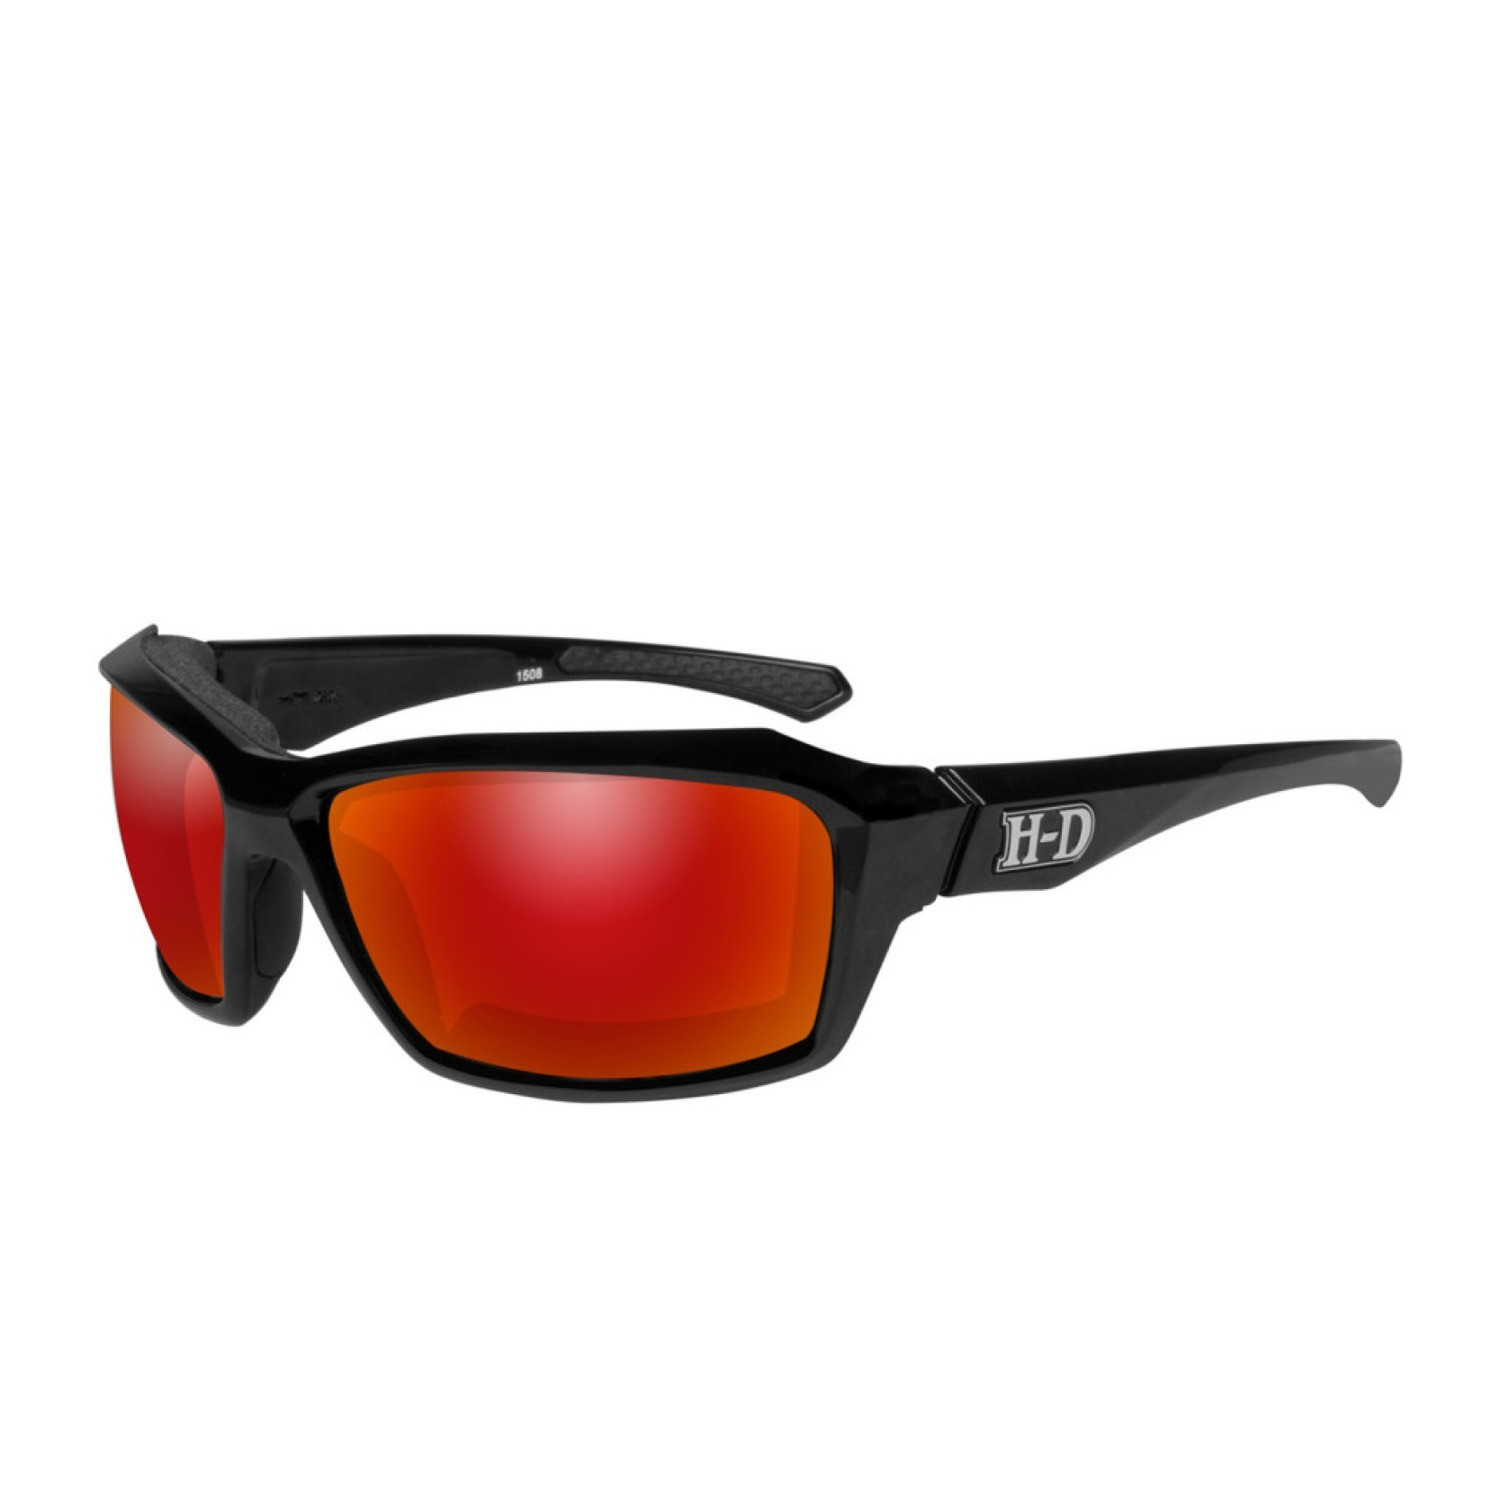 Wiley X HD Cannon Red Mirror Lenses / Gloss Black Frame Biker Glasses